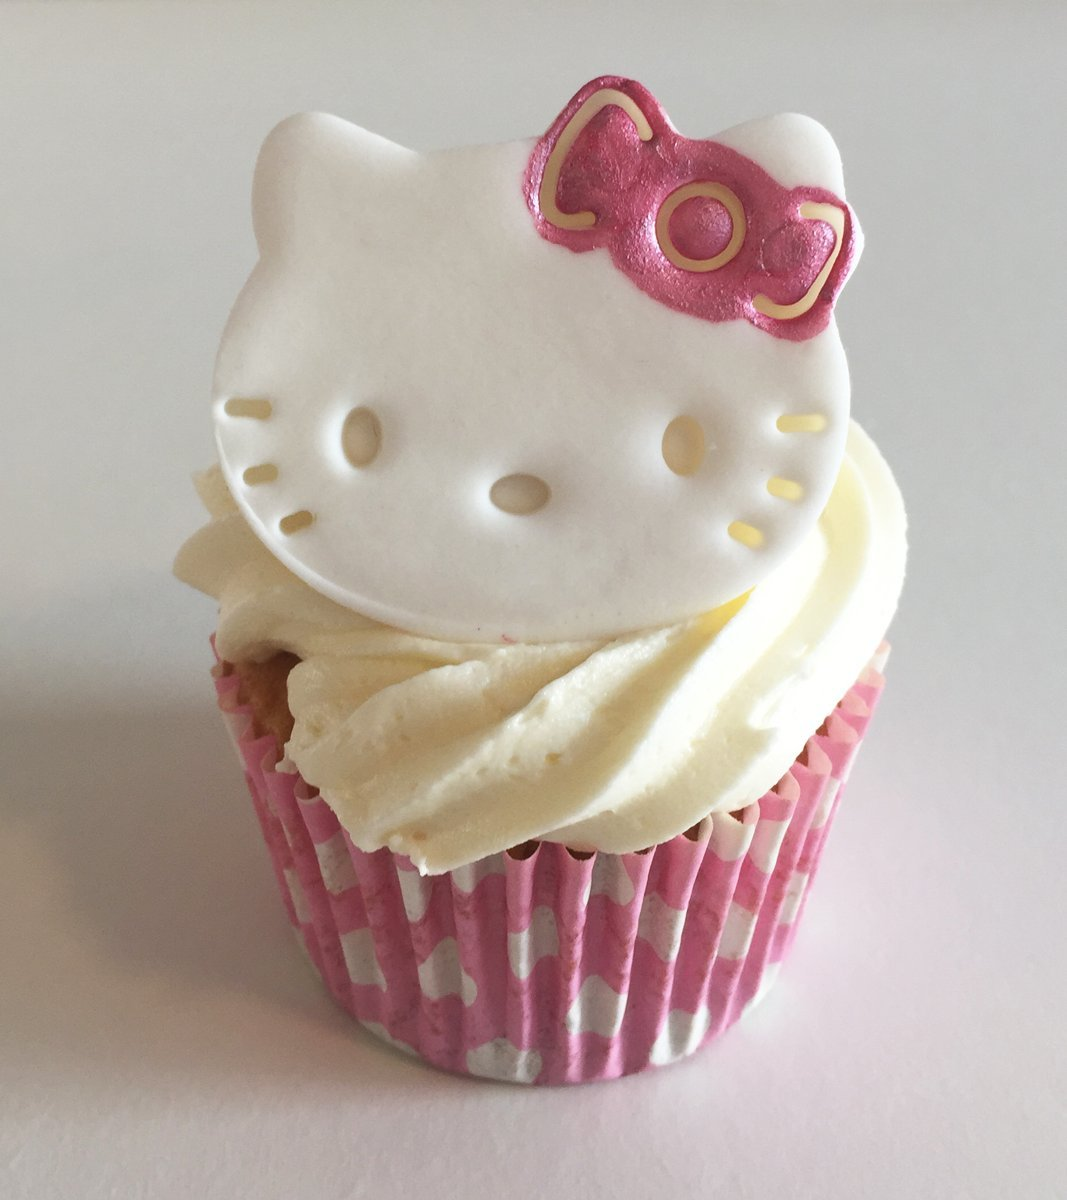 6 Sugar Hello Kitty Face Cake El Paso Mall Love Made with Imaginat Toppers- Max 69% OFF